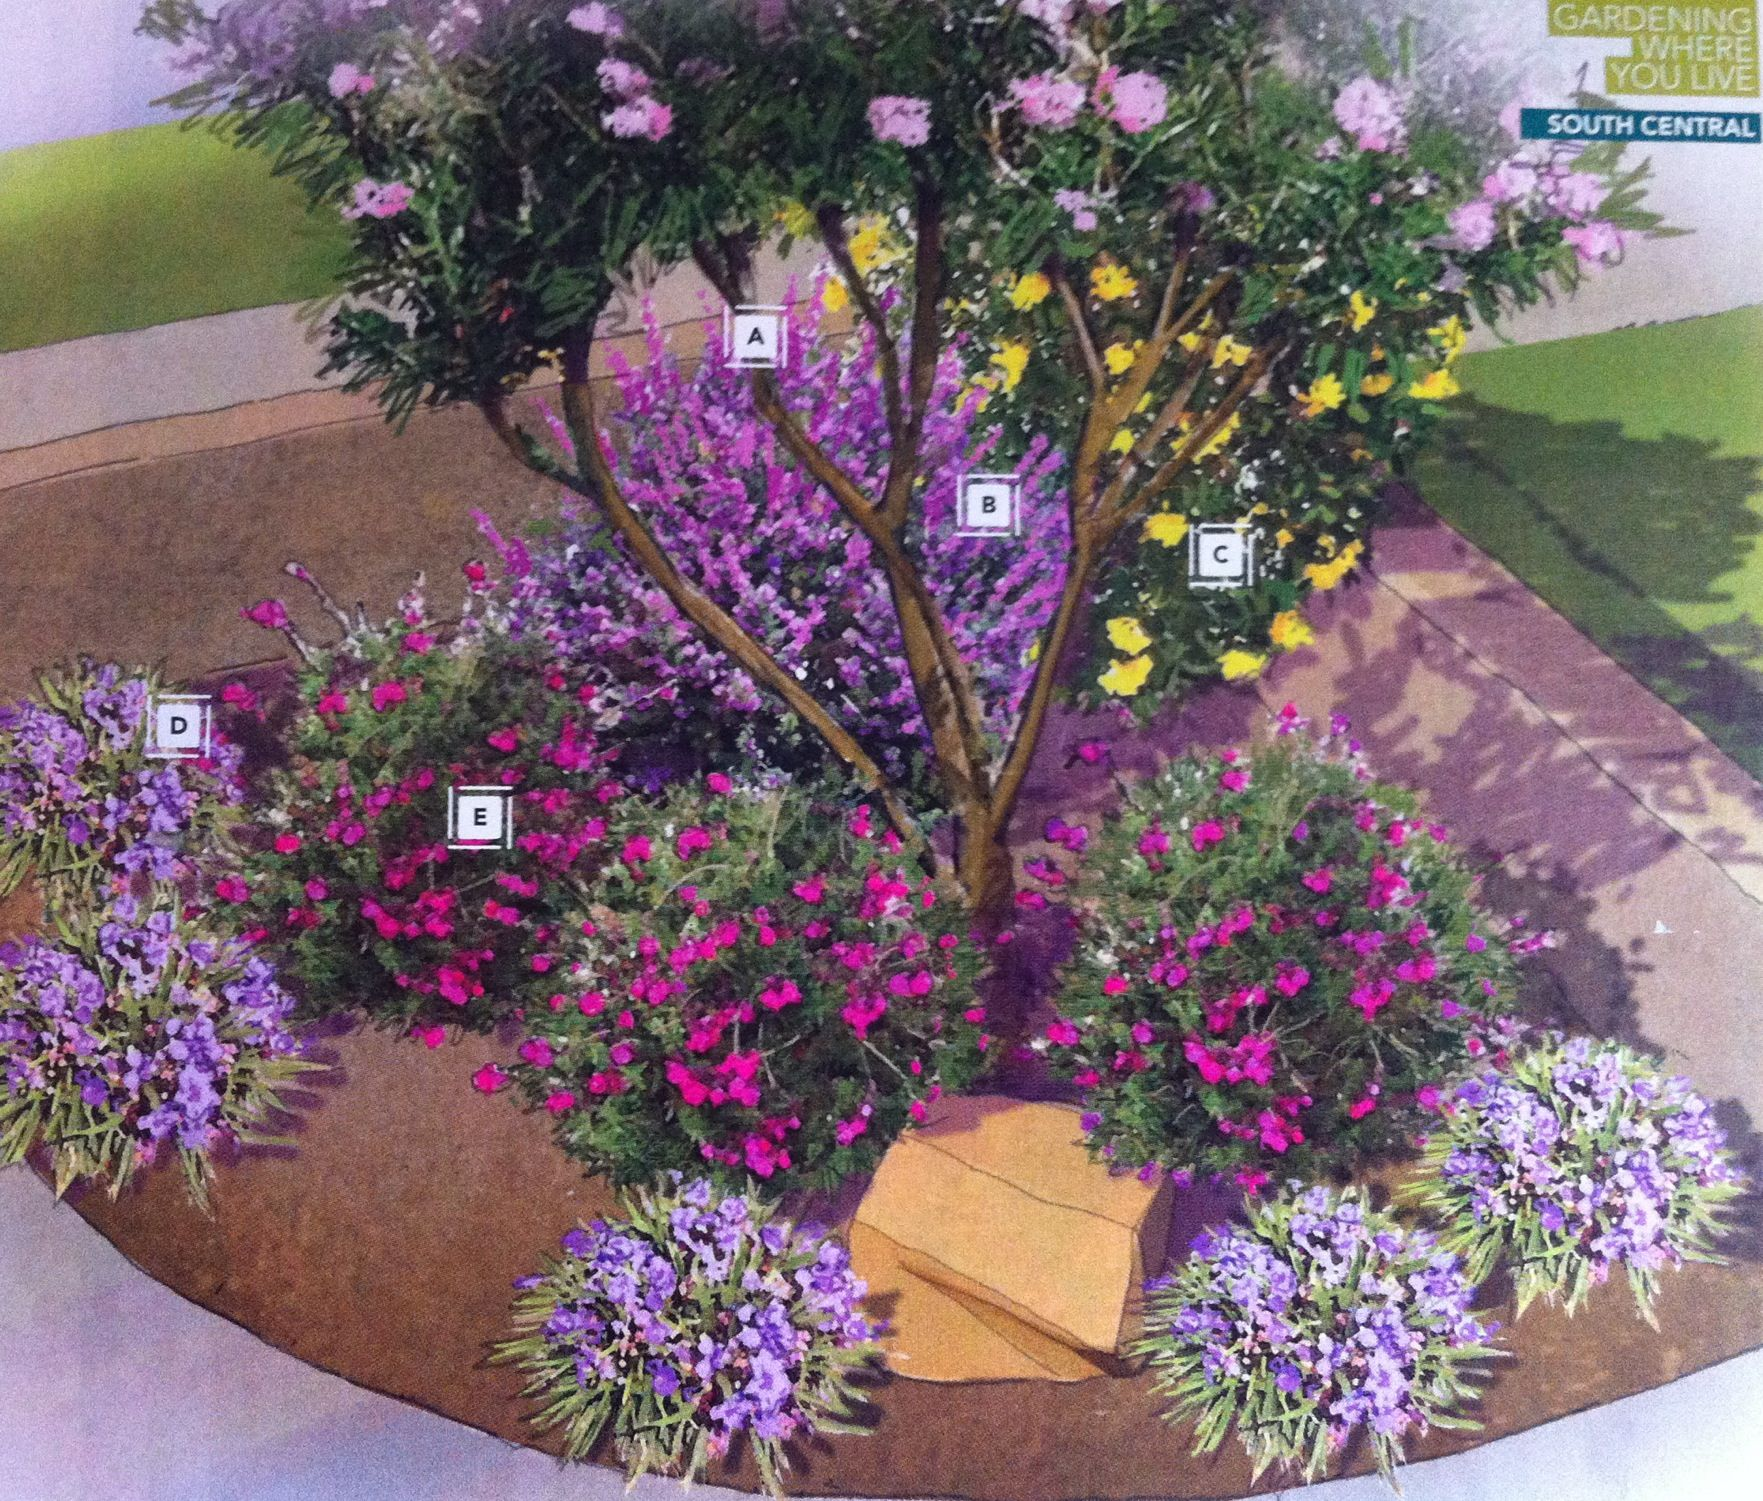 Corner Floral Garden Area: Cozy Corner Garden Plan By Lowes: (A) Desert Willow (B